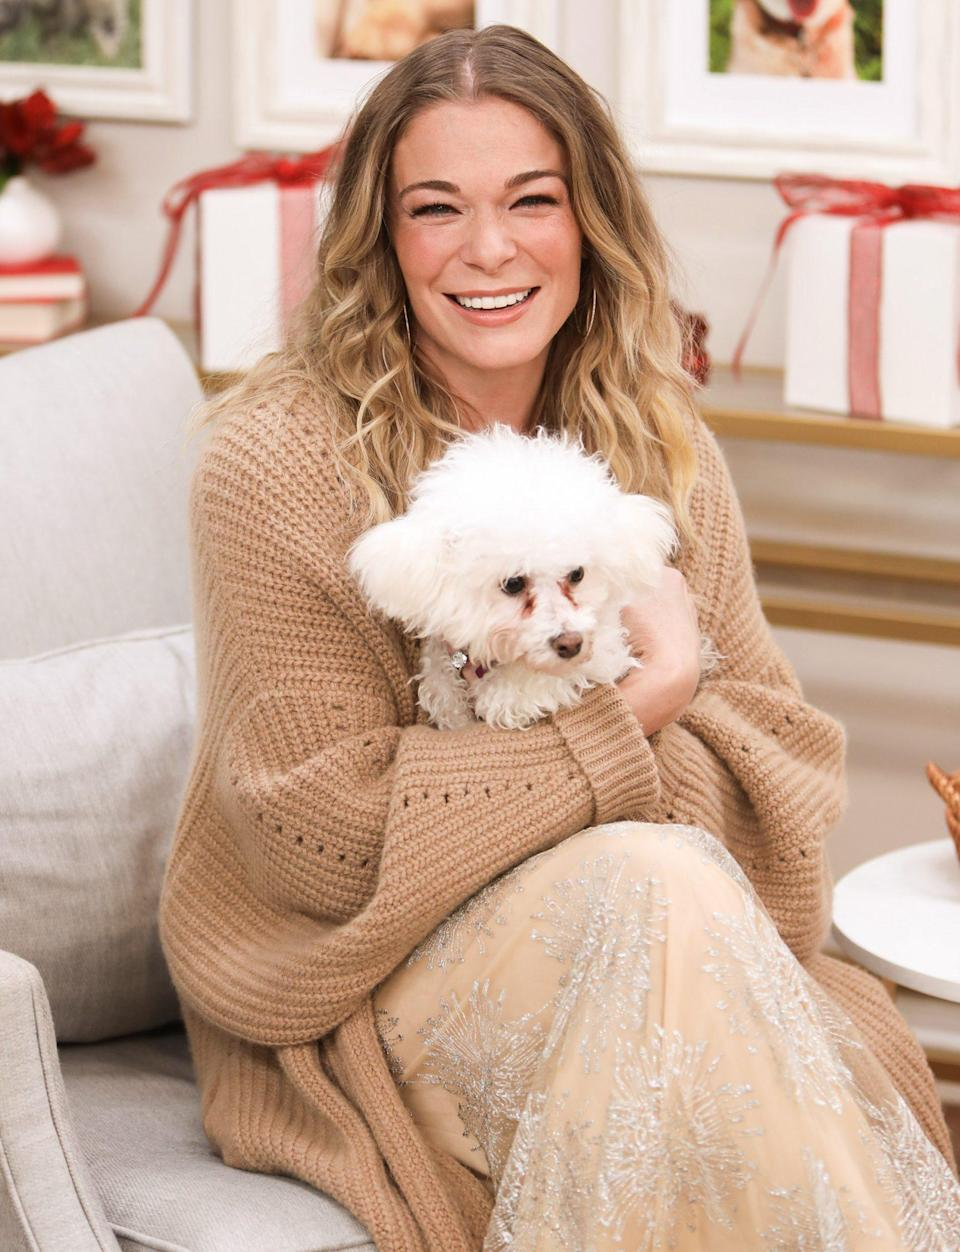 <p>LeAnn Rimes snuggles up with a rescue pup on the set of Hallmark Channel's <em>Home & Family </em>on Thursday in L.A. </p>